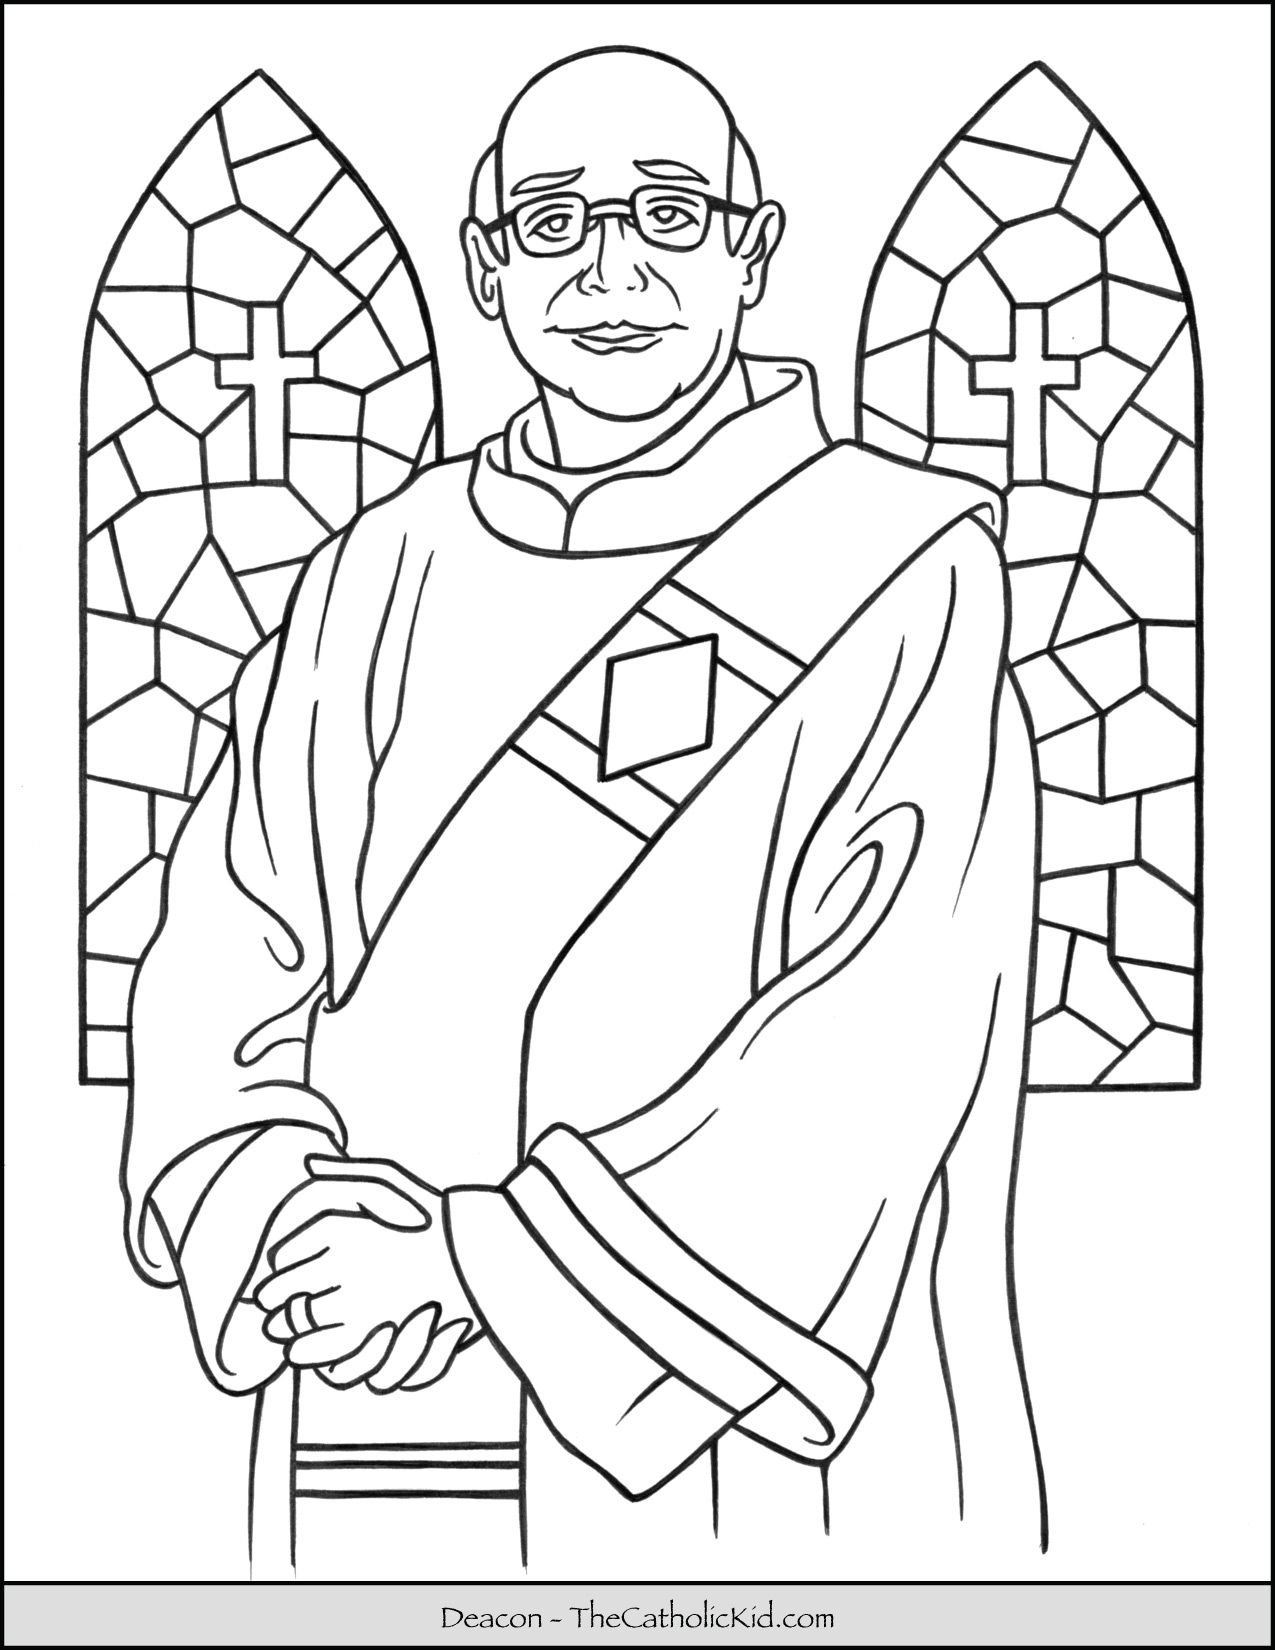 Catholic Deacon Coloring Page Thecatholickid Com Catholic Deacon Catholic Coloring Coloring Pages